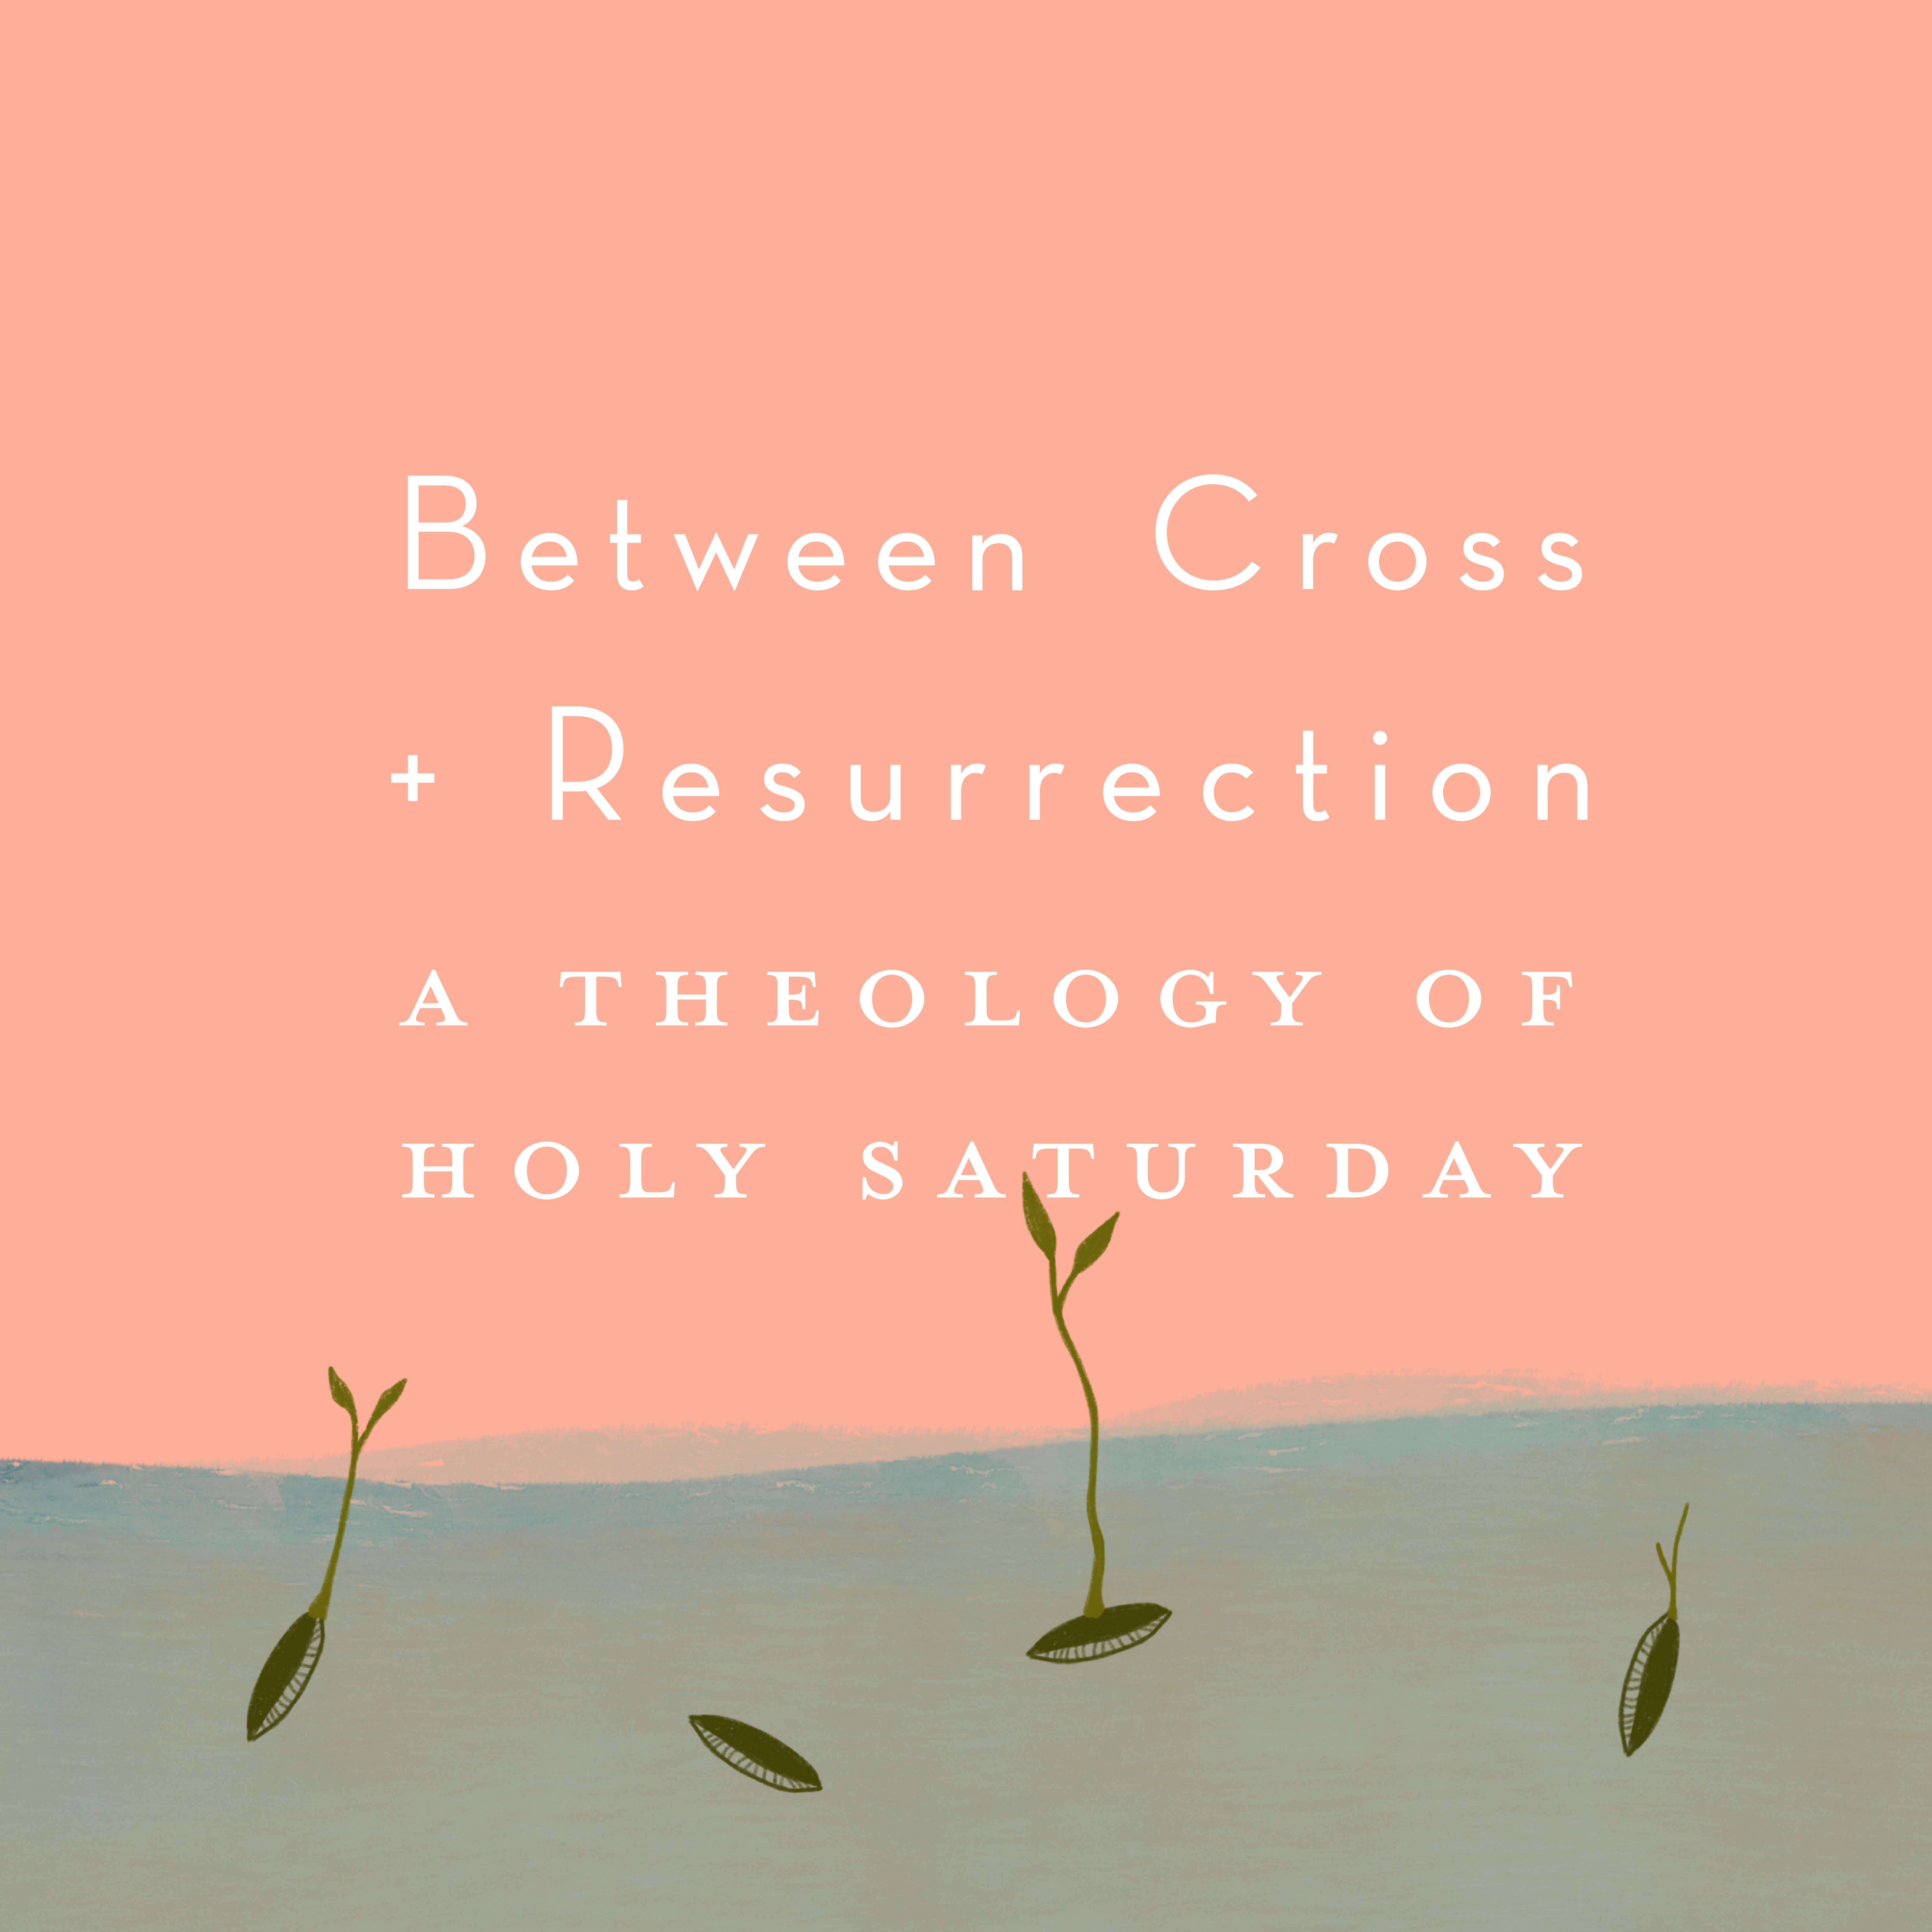 Between Cross & Resurrection: transition, tradition, and transformation